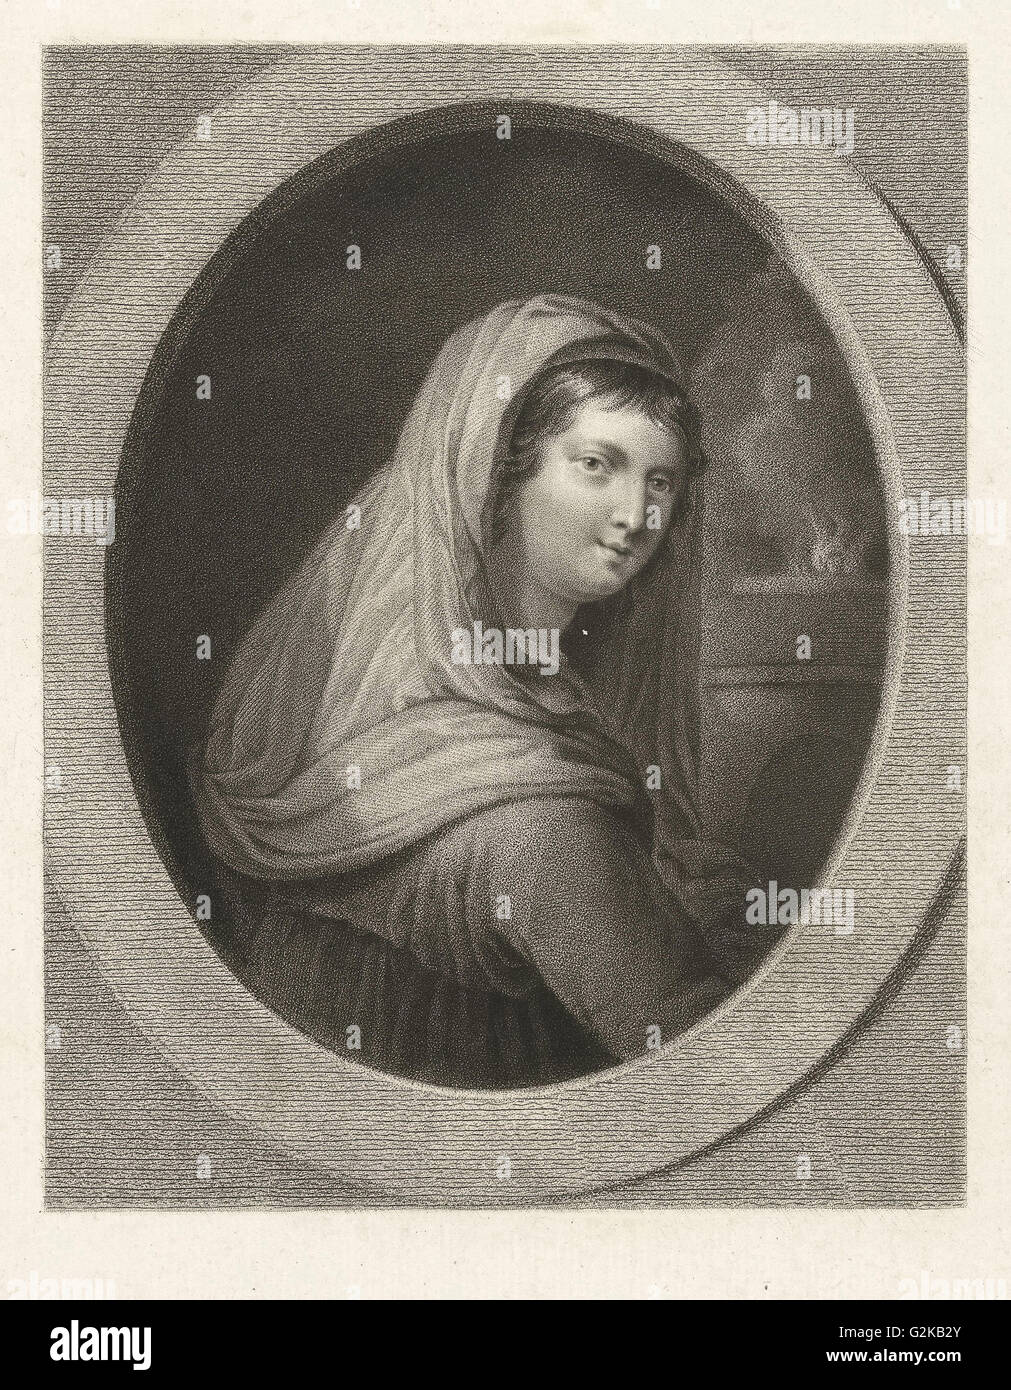 Young woman with a veil, in the background a fire, Lambertus Antonius Claessens, Guido Reni, c. 1829 - c. 1834 - Stock Image